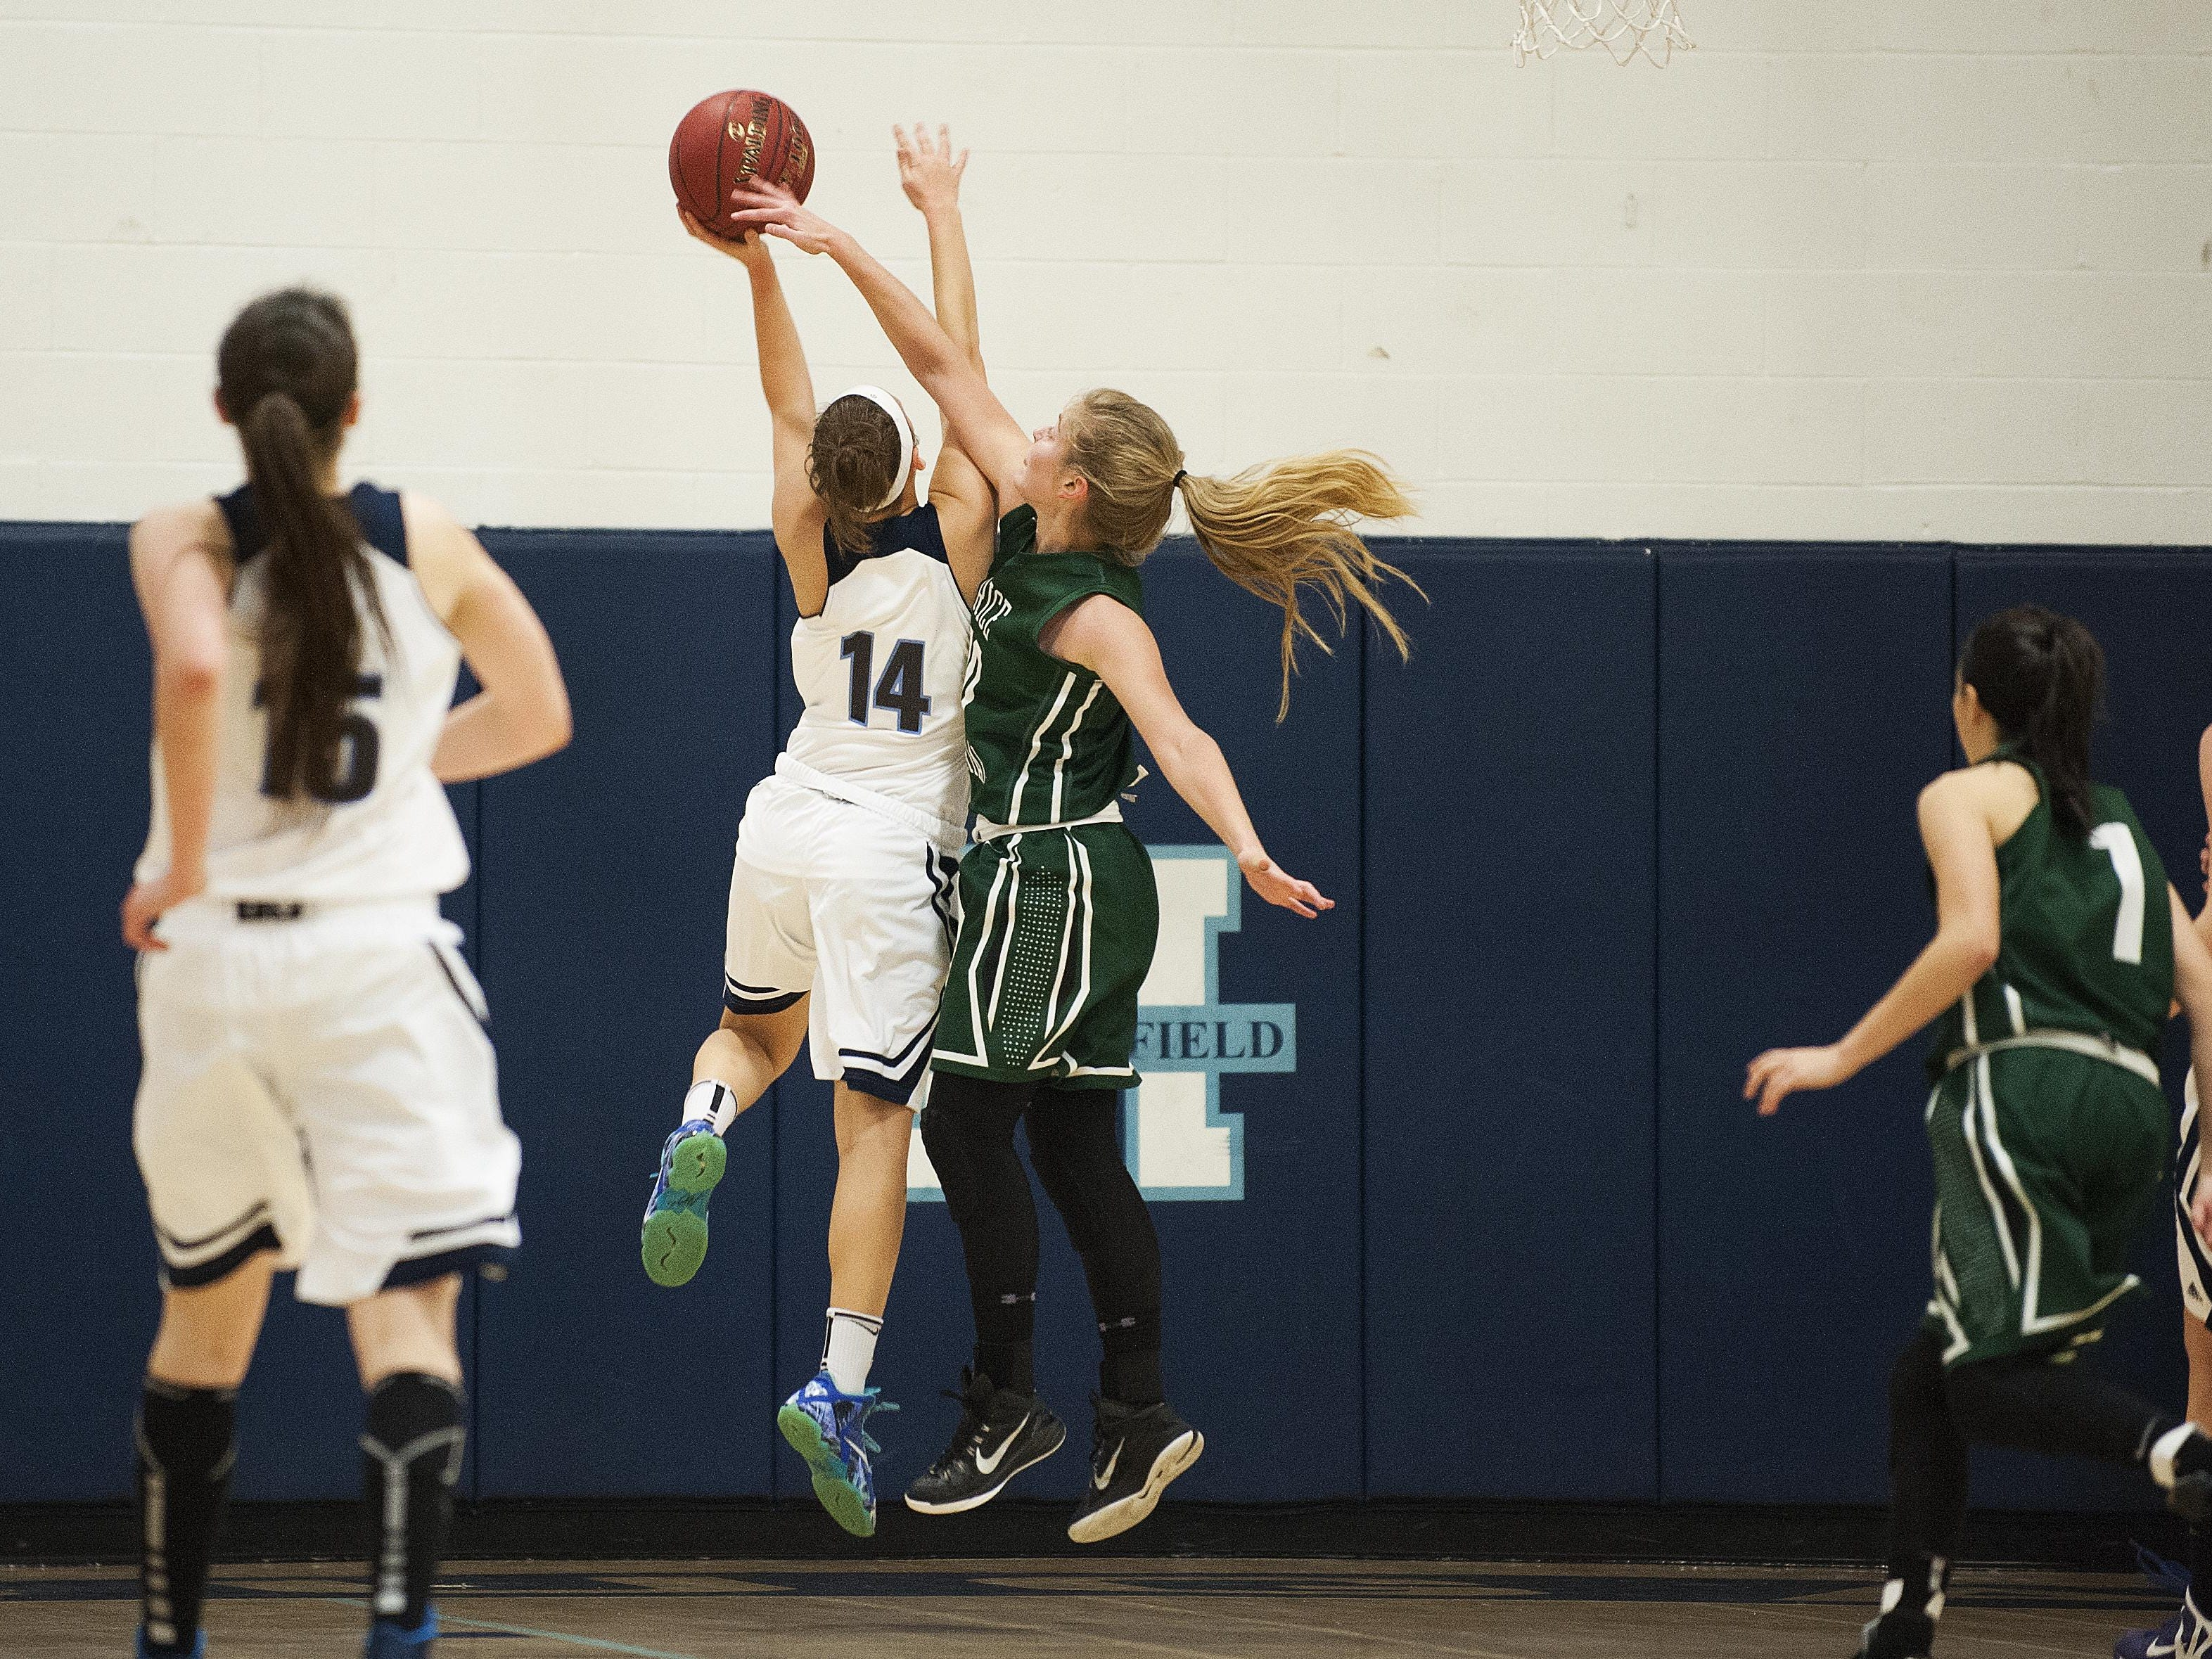 Rice forward Stephanie Langlais (10) tries to block the shot by Mount Mansfield forward Katie Estes (14) during the girls basketball game between the Rice Green knights and the Mount Mansfield Cougars at MMU High School on Friday night December 4, 2015 in Jericho.